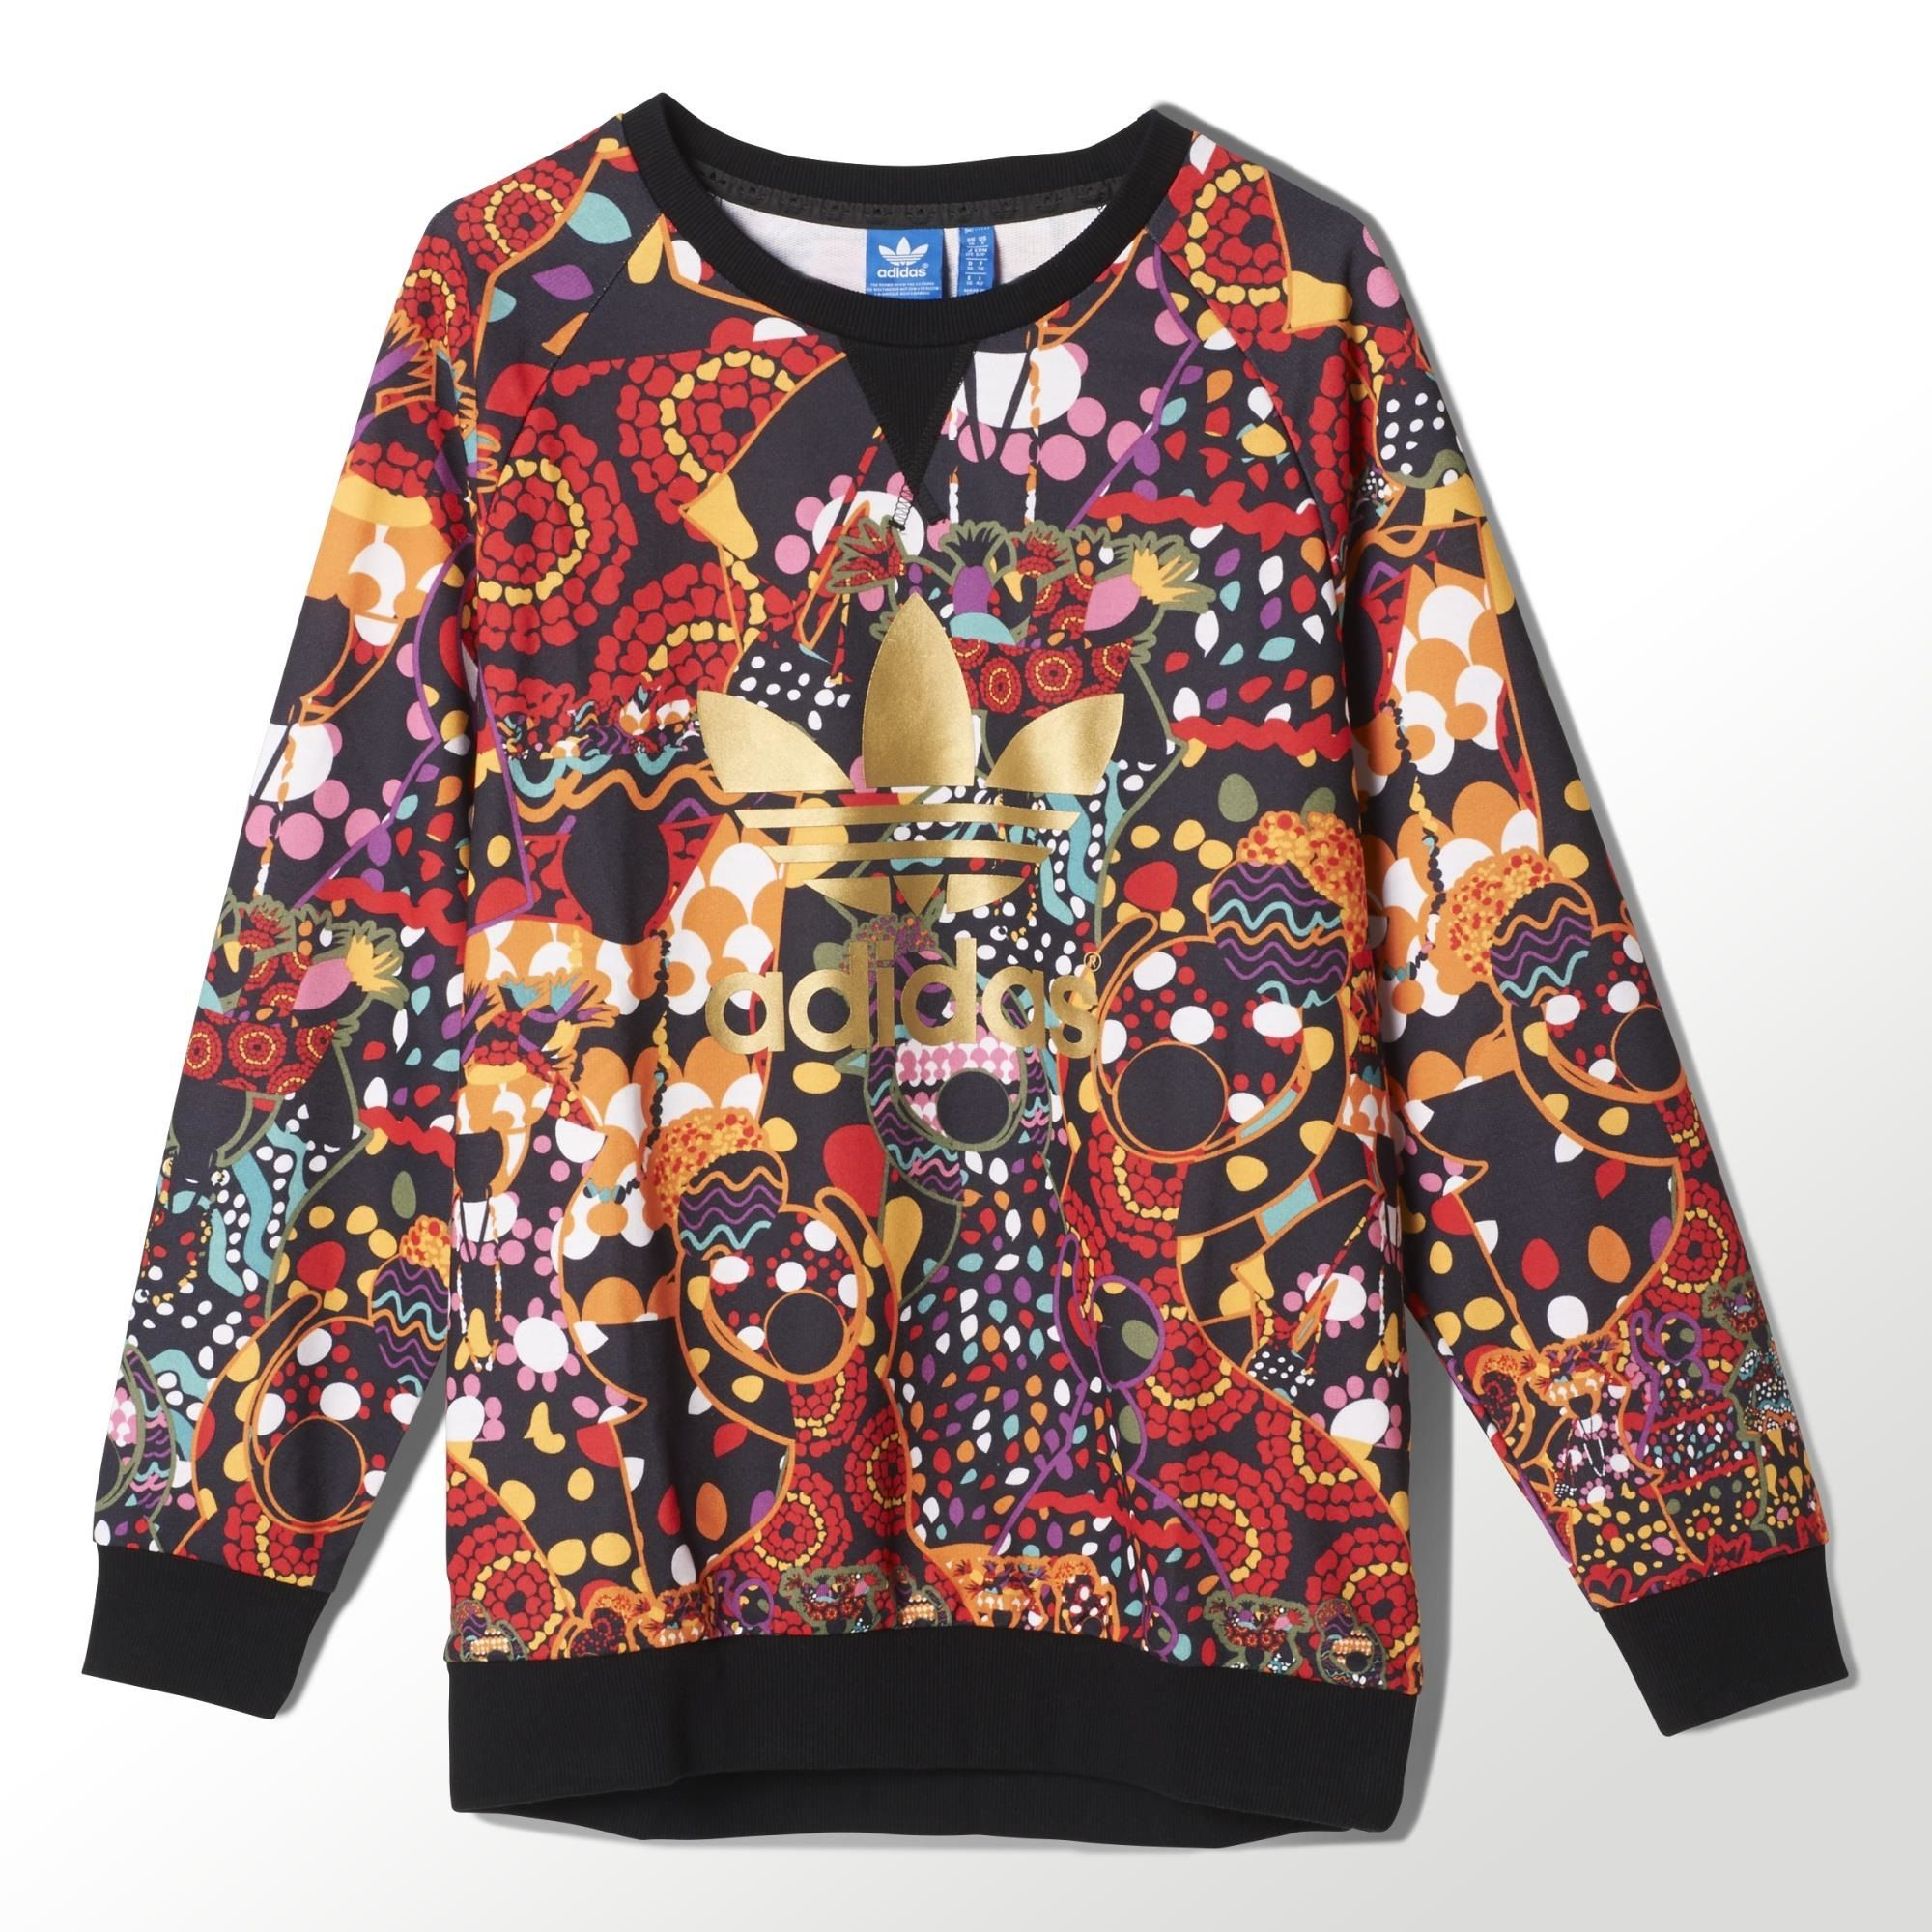 new products f865e 6f948 One of adidas  most iconic styles is the blank canvas for the folk  dance-inspired patterns on the Maracatu Sweatshirt for women.